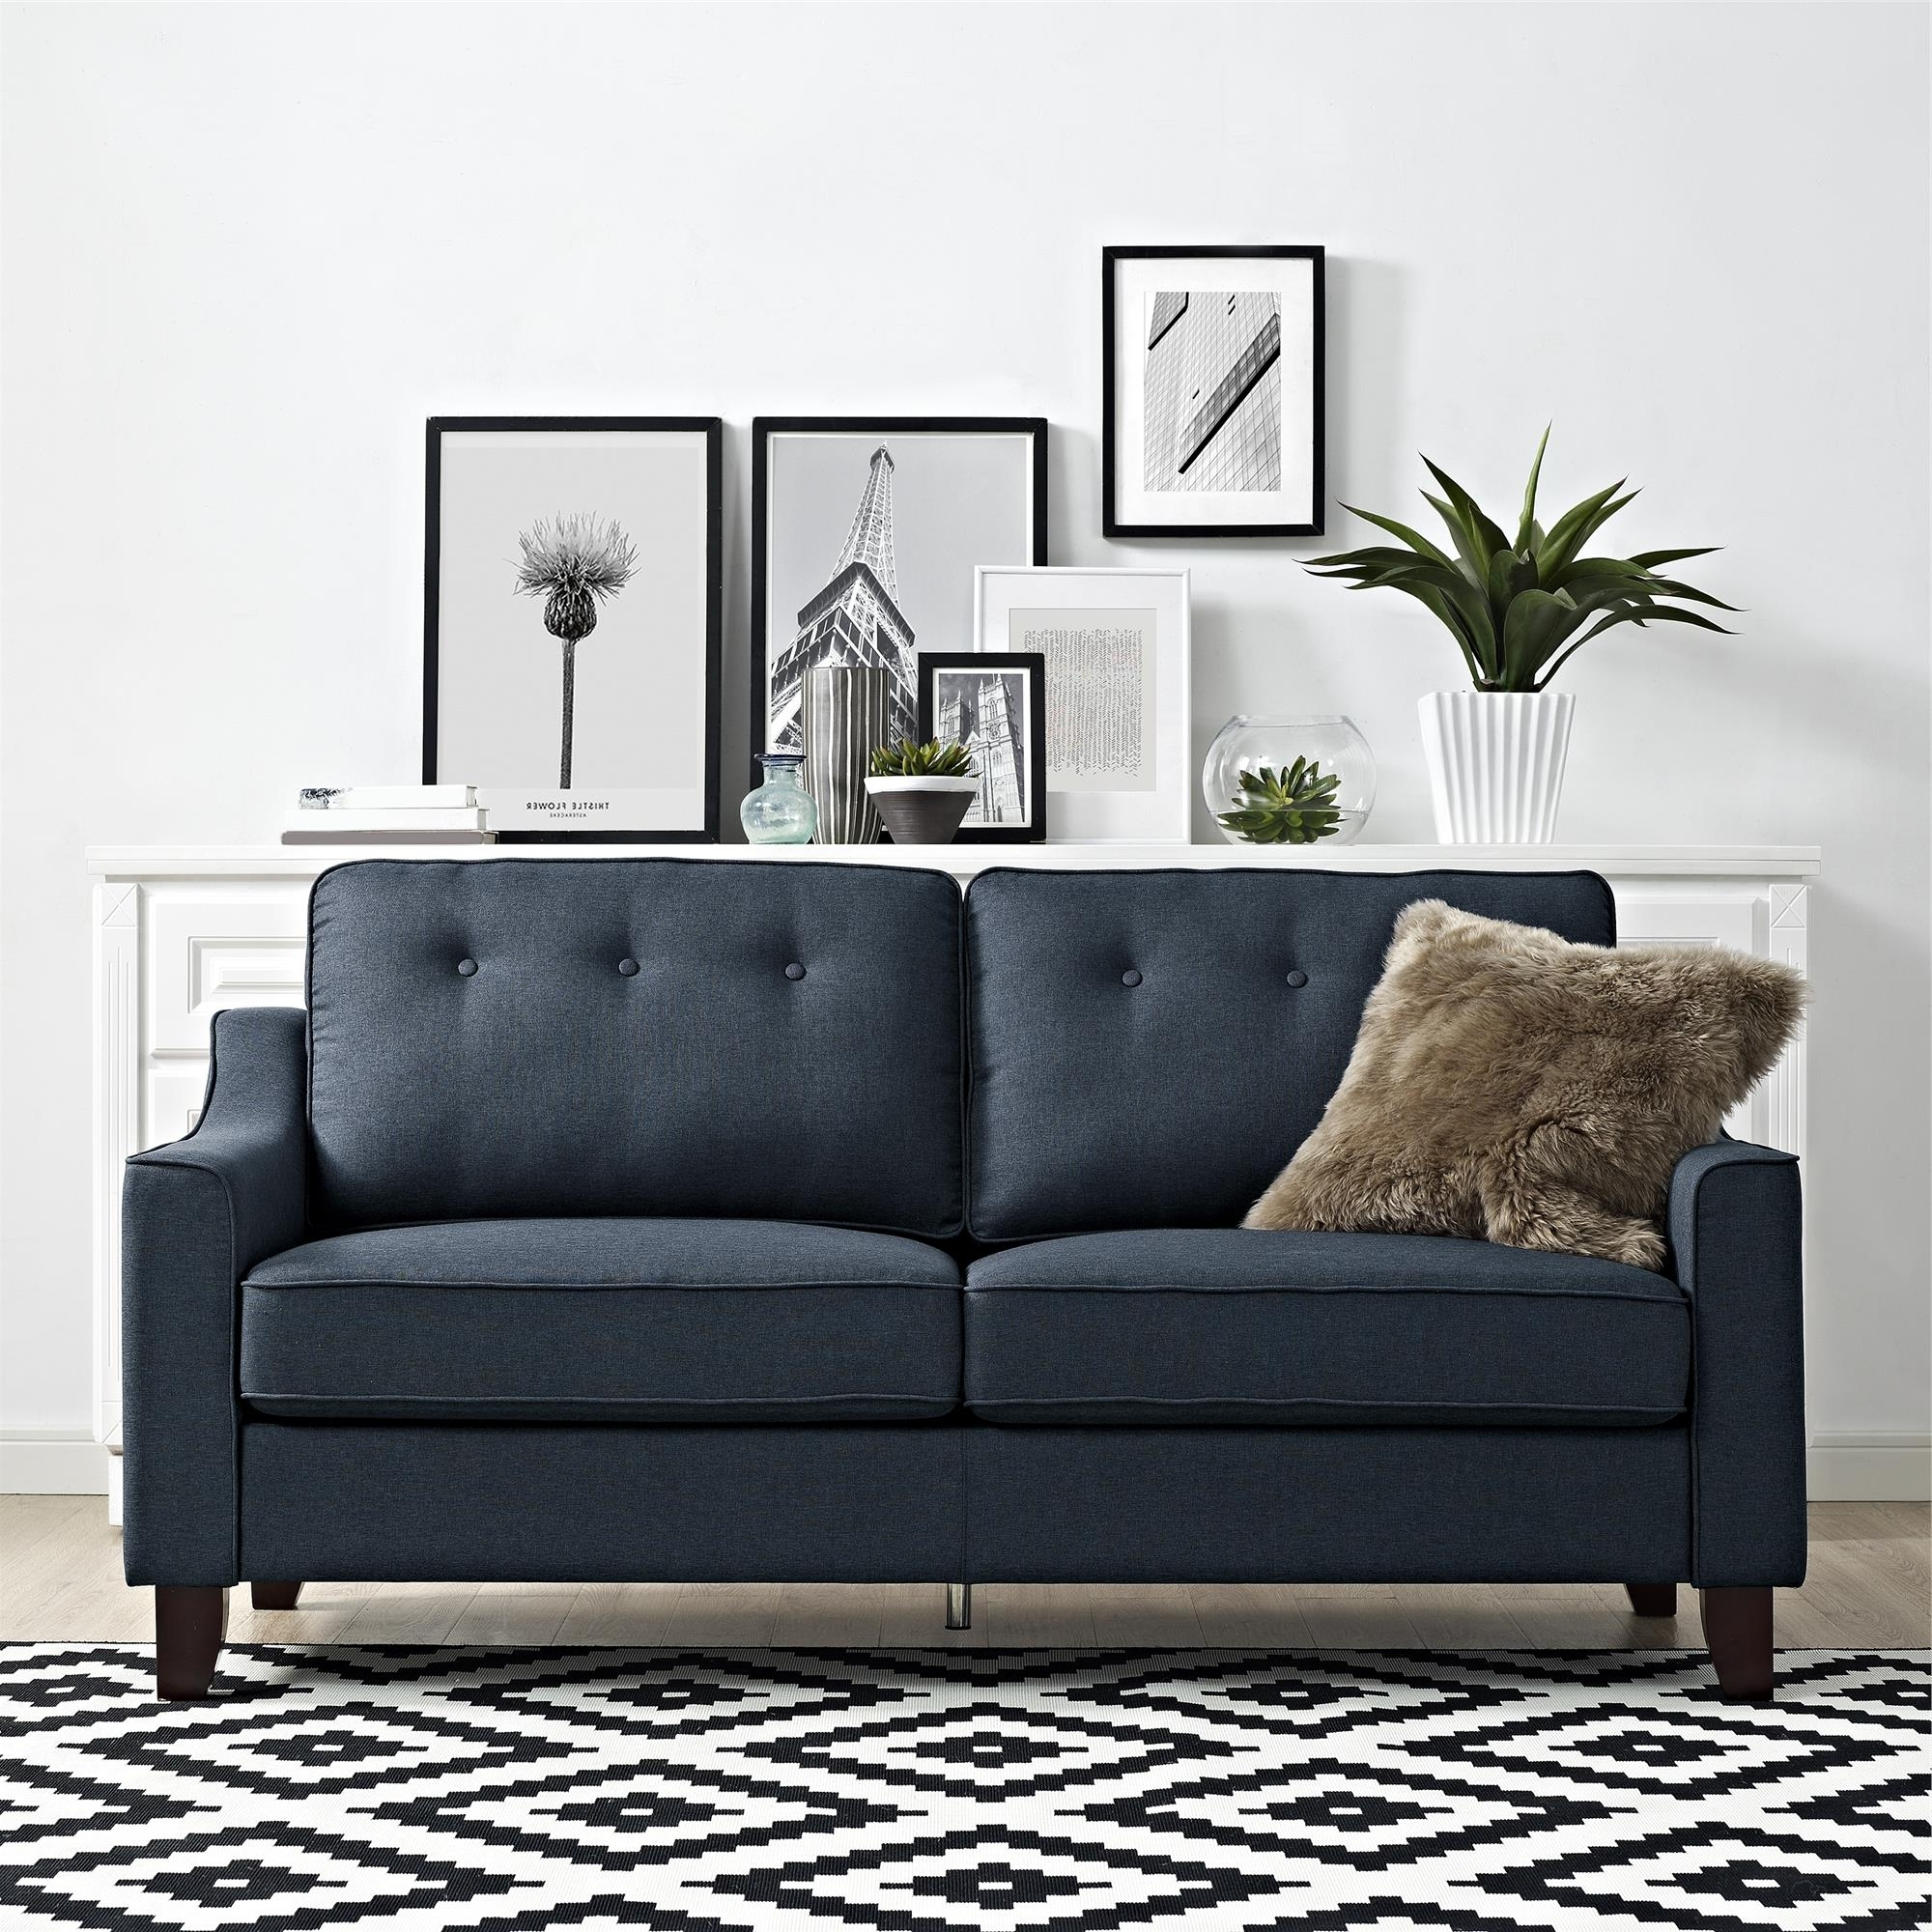 Kamloops Sectional Sofas Pertaining To Best And Newest Furniture : Hay Sofa Australia Tufted Leather Sofa Black Tufted (View 15 of 20)